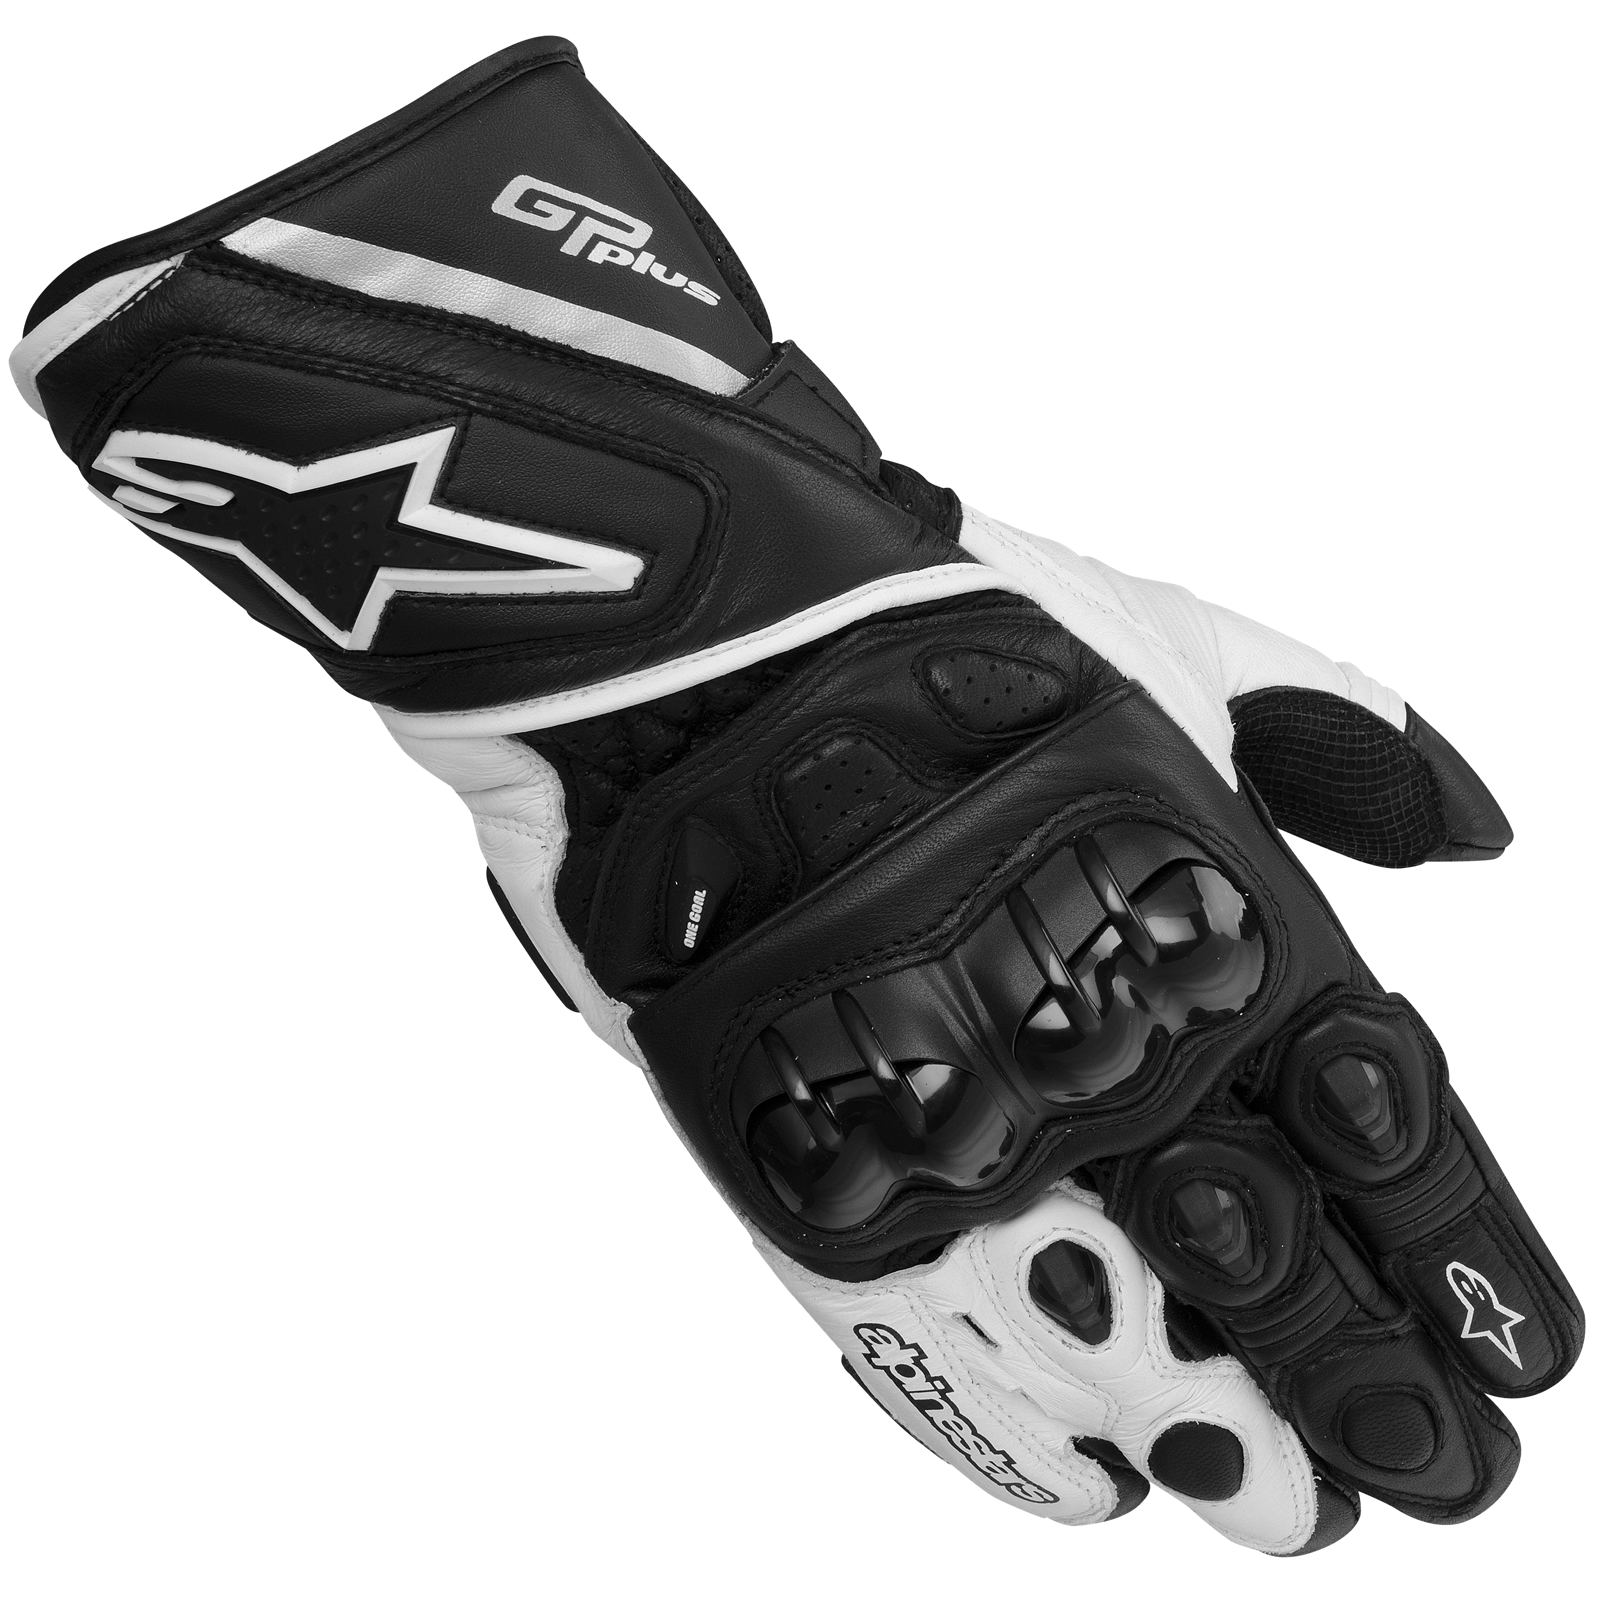 alpinestars 2013 gp plus motorcycle racing sports summer kevlar leather gloves ebay. Black Bedroom Furniture Sets. Home Design Ideas